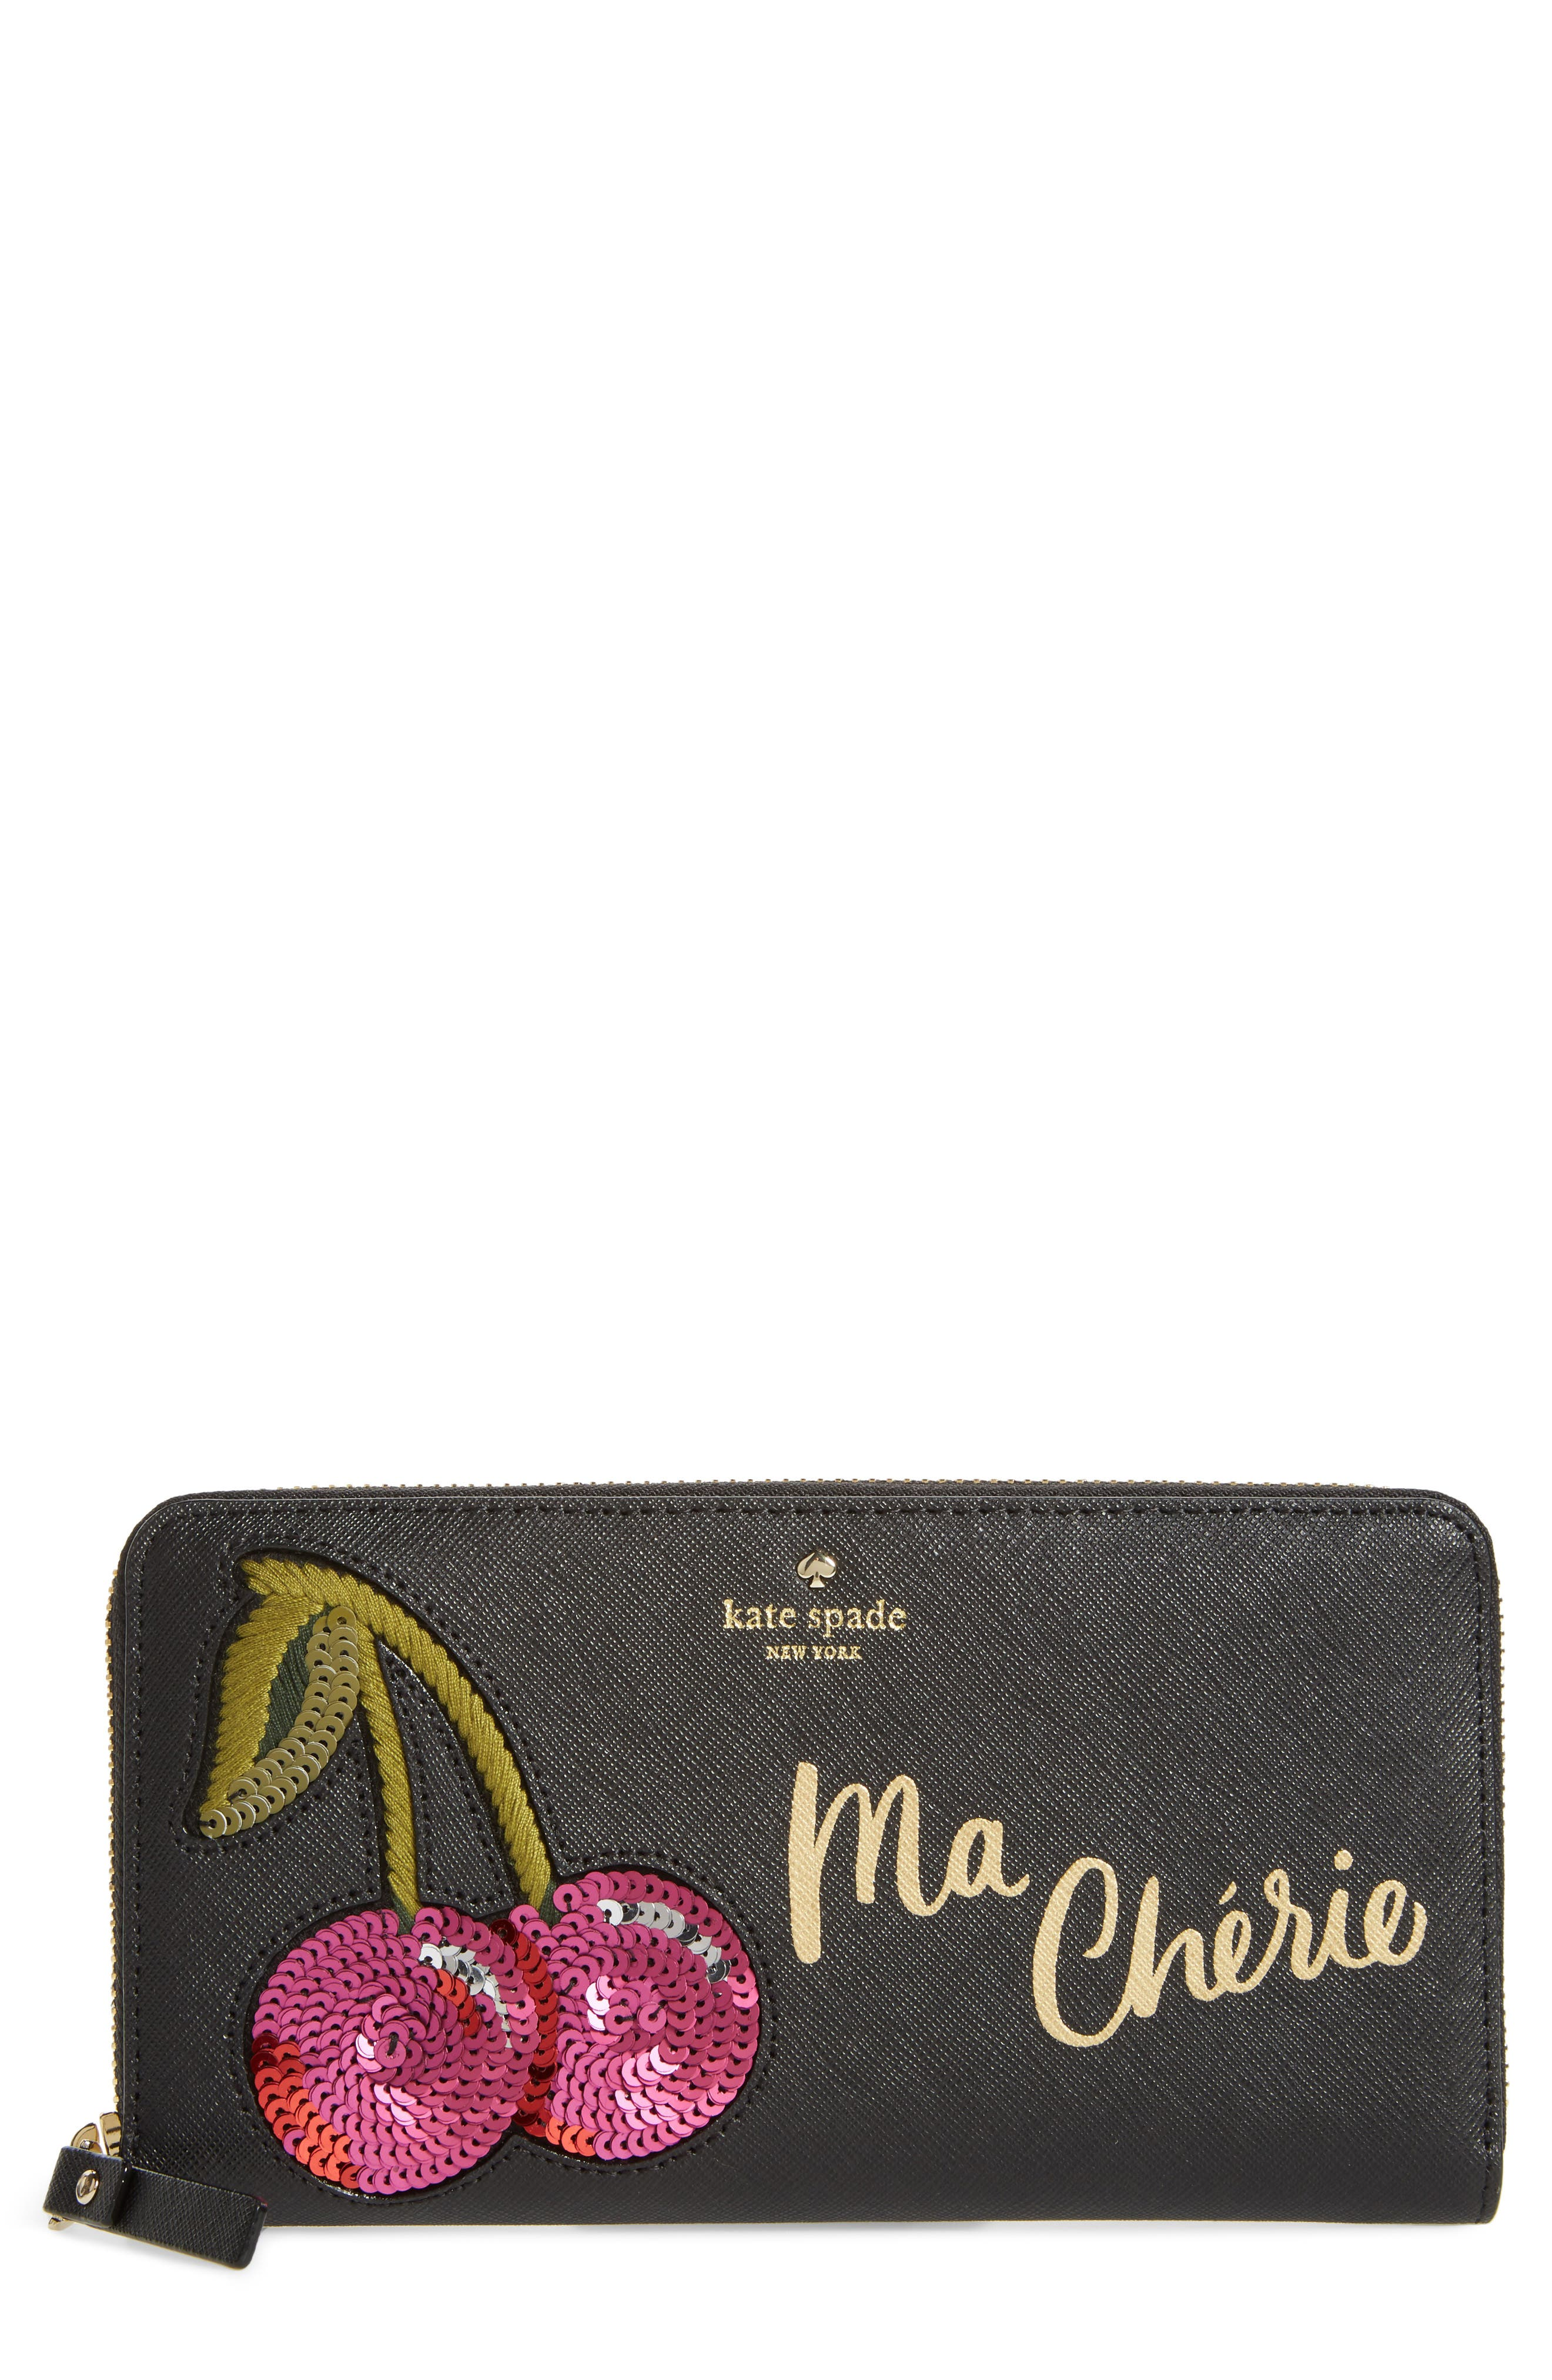 KATE SPADE NEW YORK ma chérie - lacey appliqué leather wallet